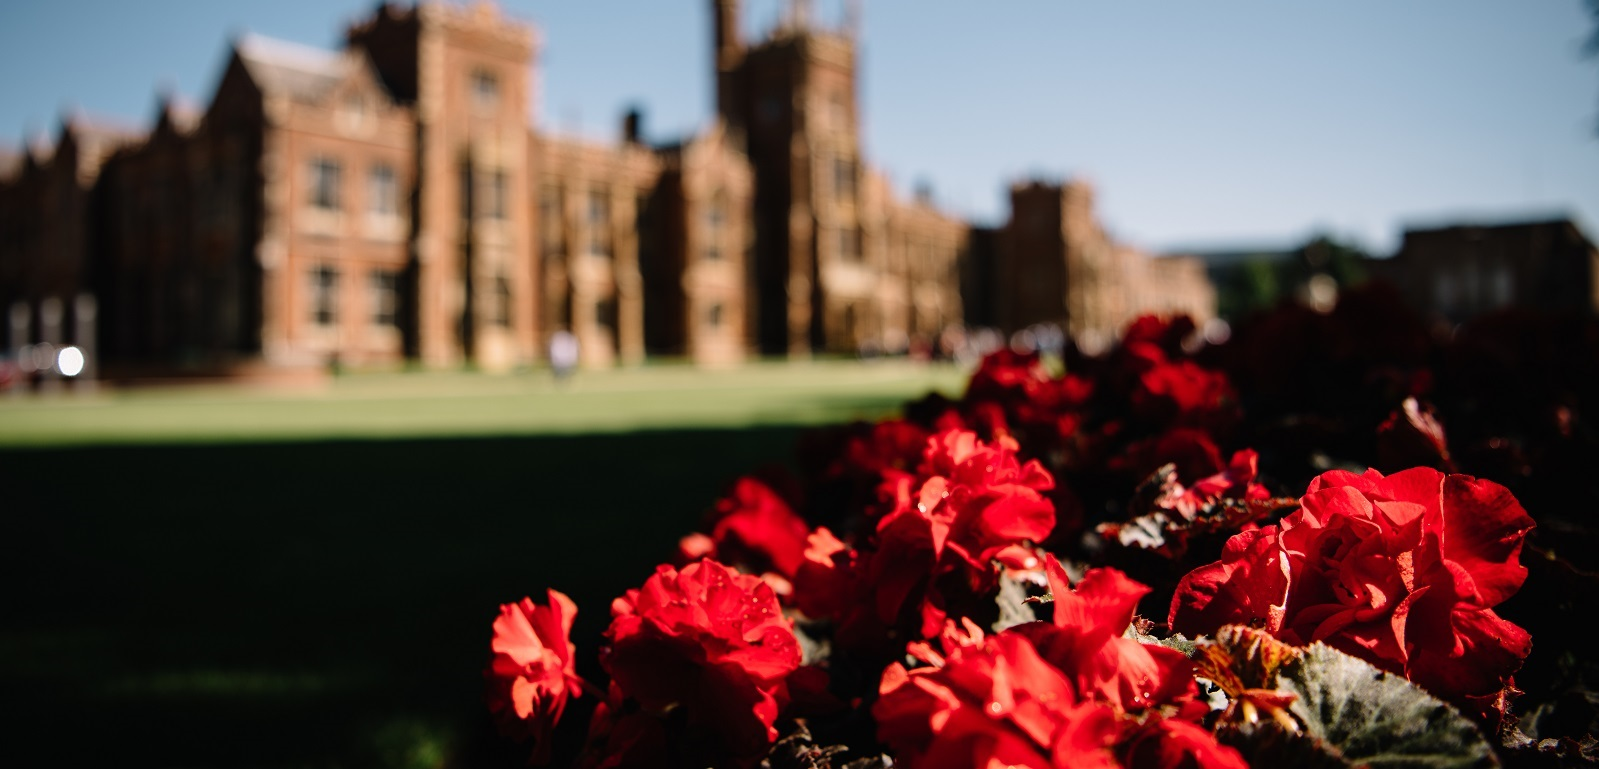 Red flowers in foreground with front of Lanyon Building blurred in background